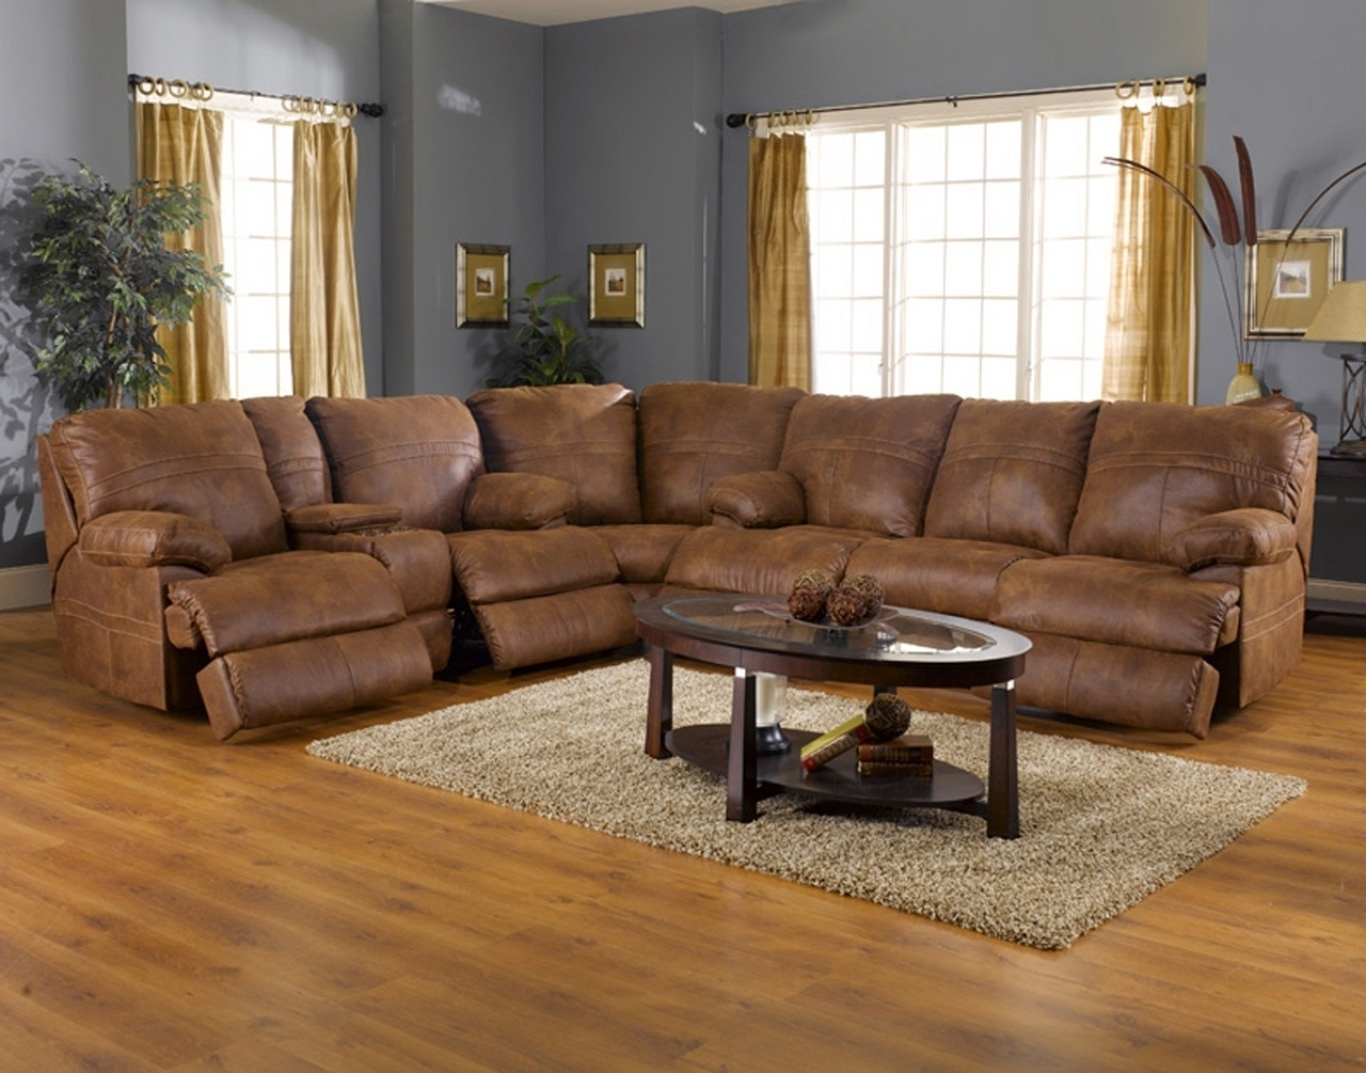 Popular High End Leather Furniture For High End Leather Sectional Sofas (View 15 of 20)